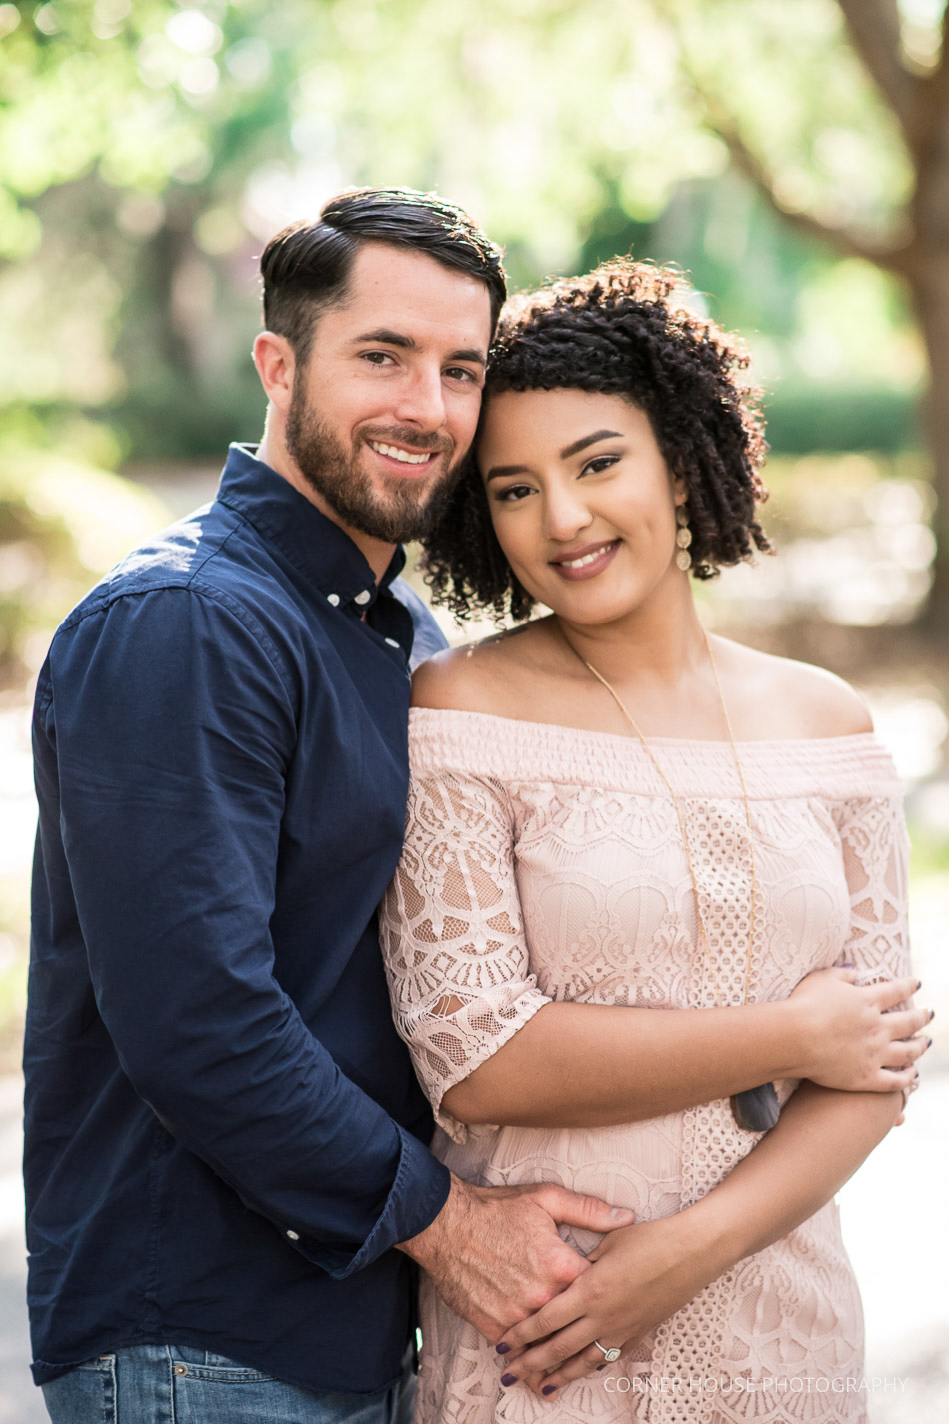 Cypress Grove Rose Garden Engagement